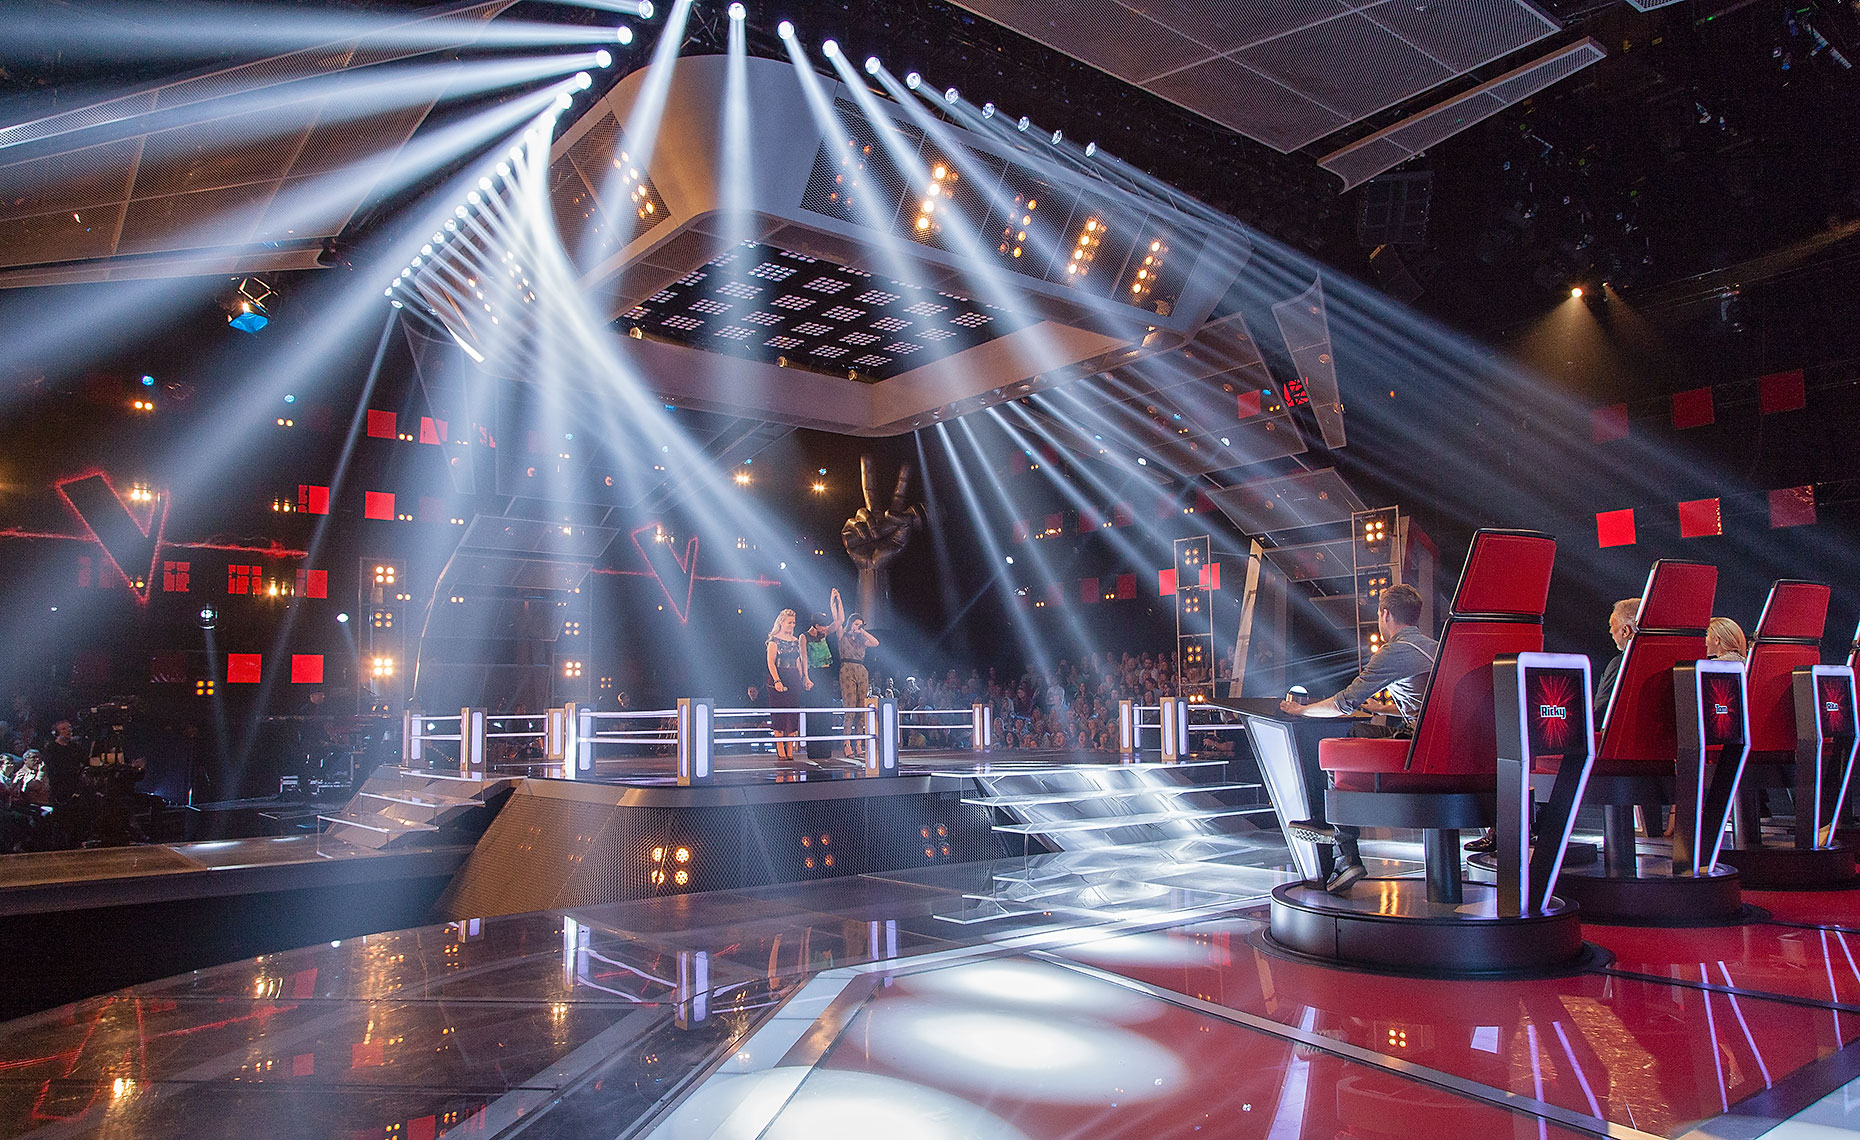 Interior television studio set The Voice with seated presenters and performer on stage